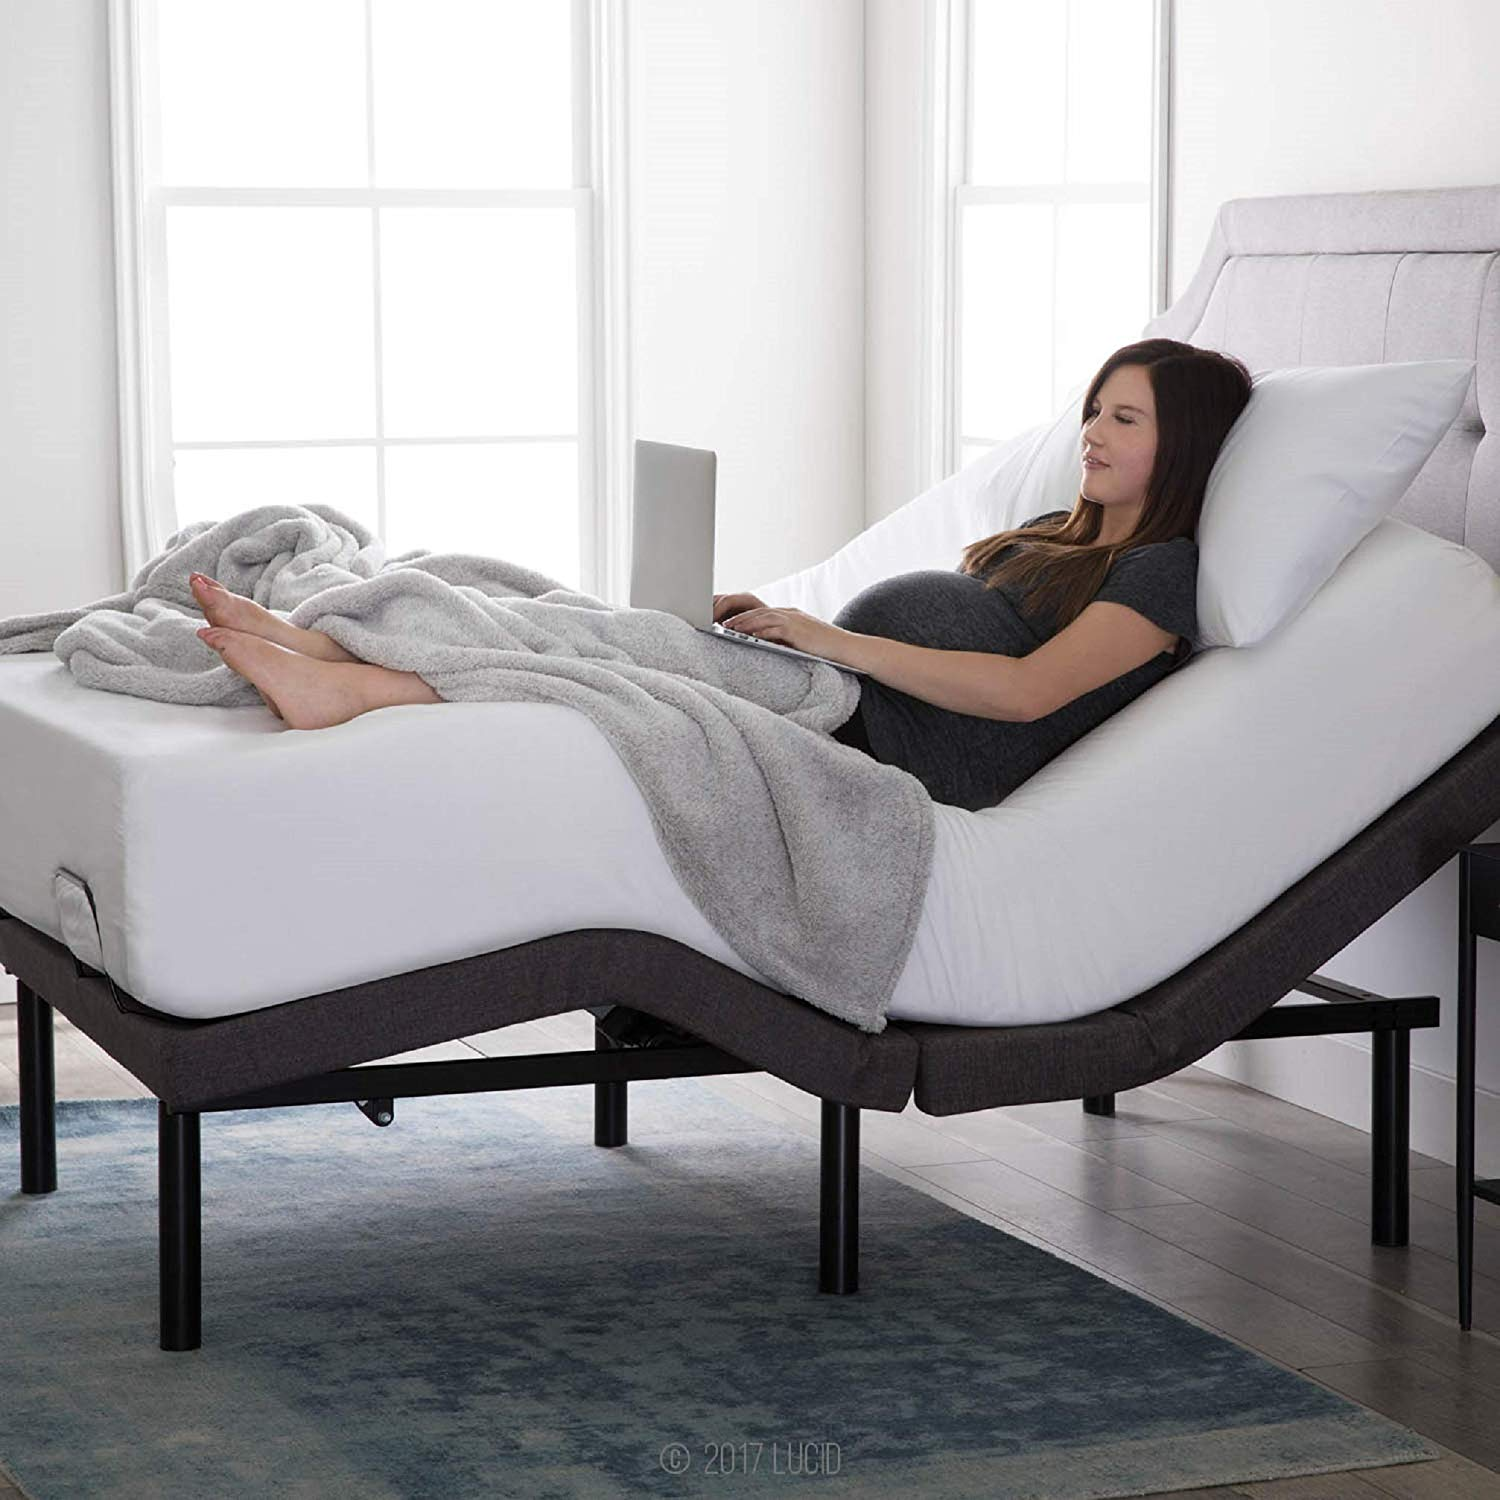 Split King Adjustable Beds Reviews - Lucid L300